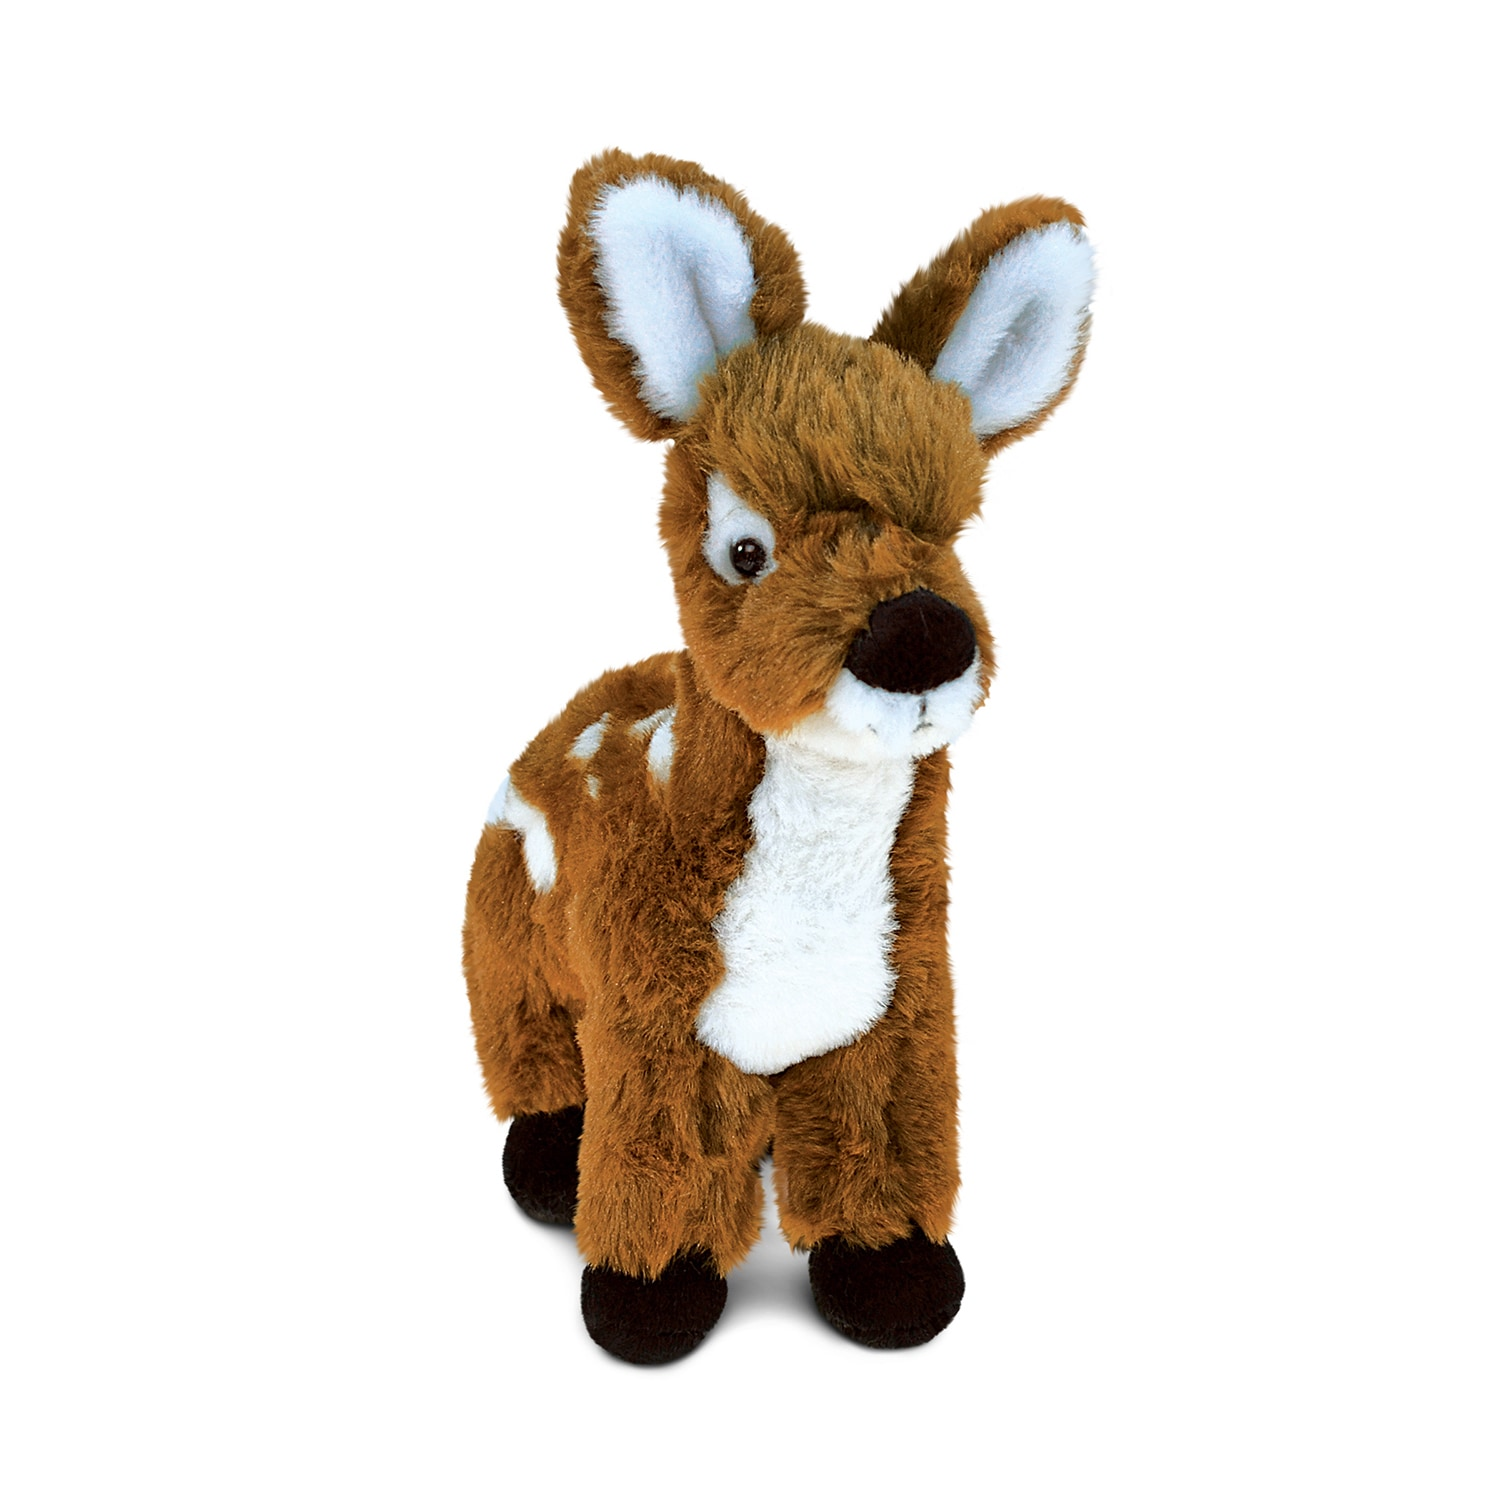 Puzzled Standing Deer Small Super Soft Plush 6-inch Stuff...